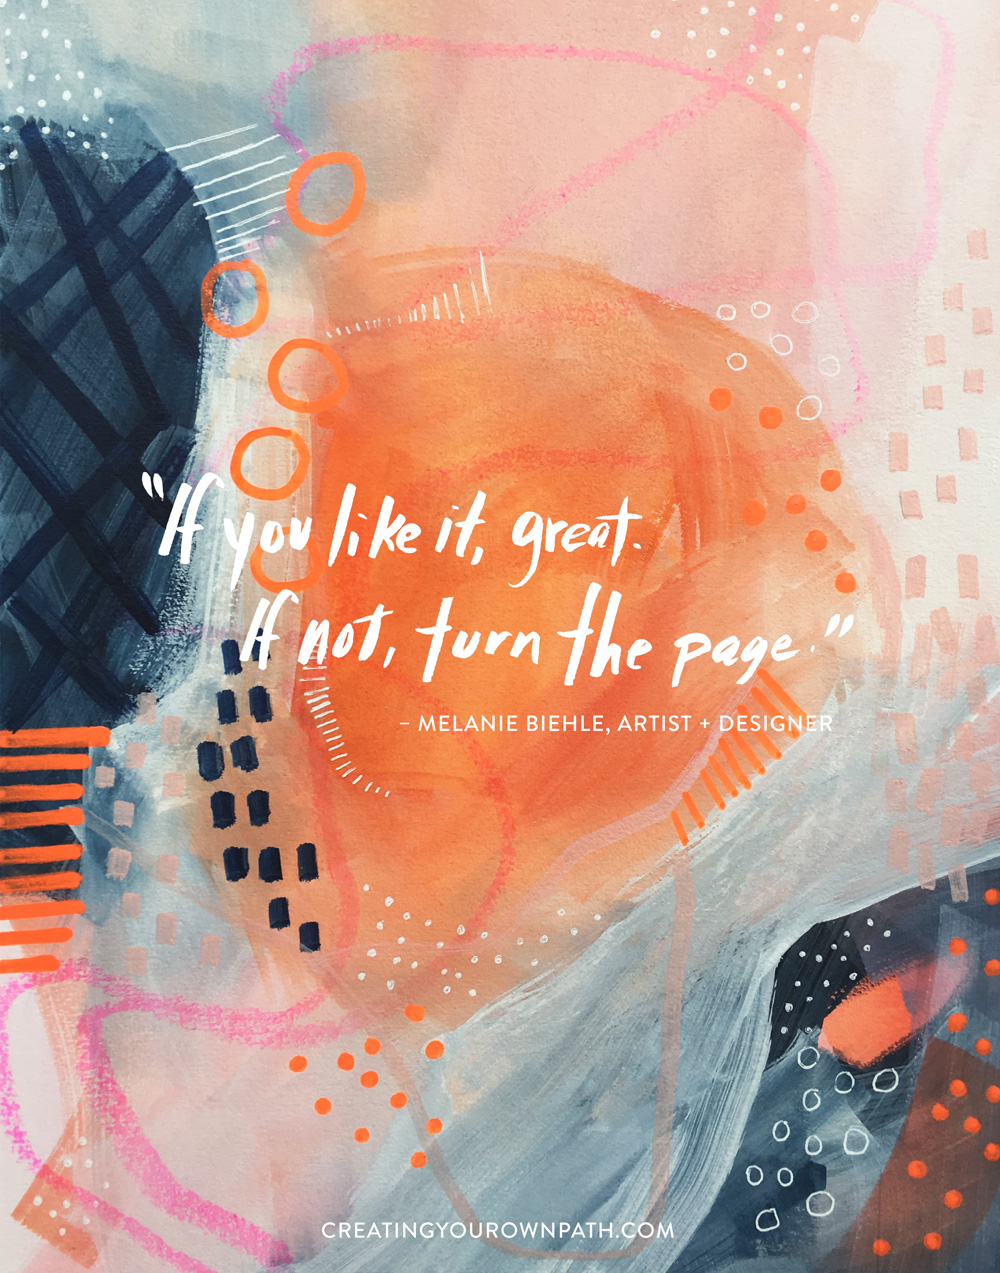 """If you like it, great. If not, turn the page."" — Artist, Designer + Illustrator Melanie Biehle // www.creatingyourownpath.com"